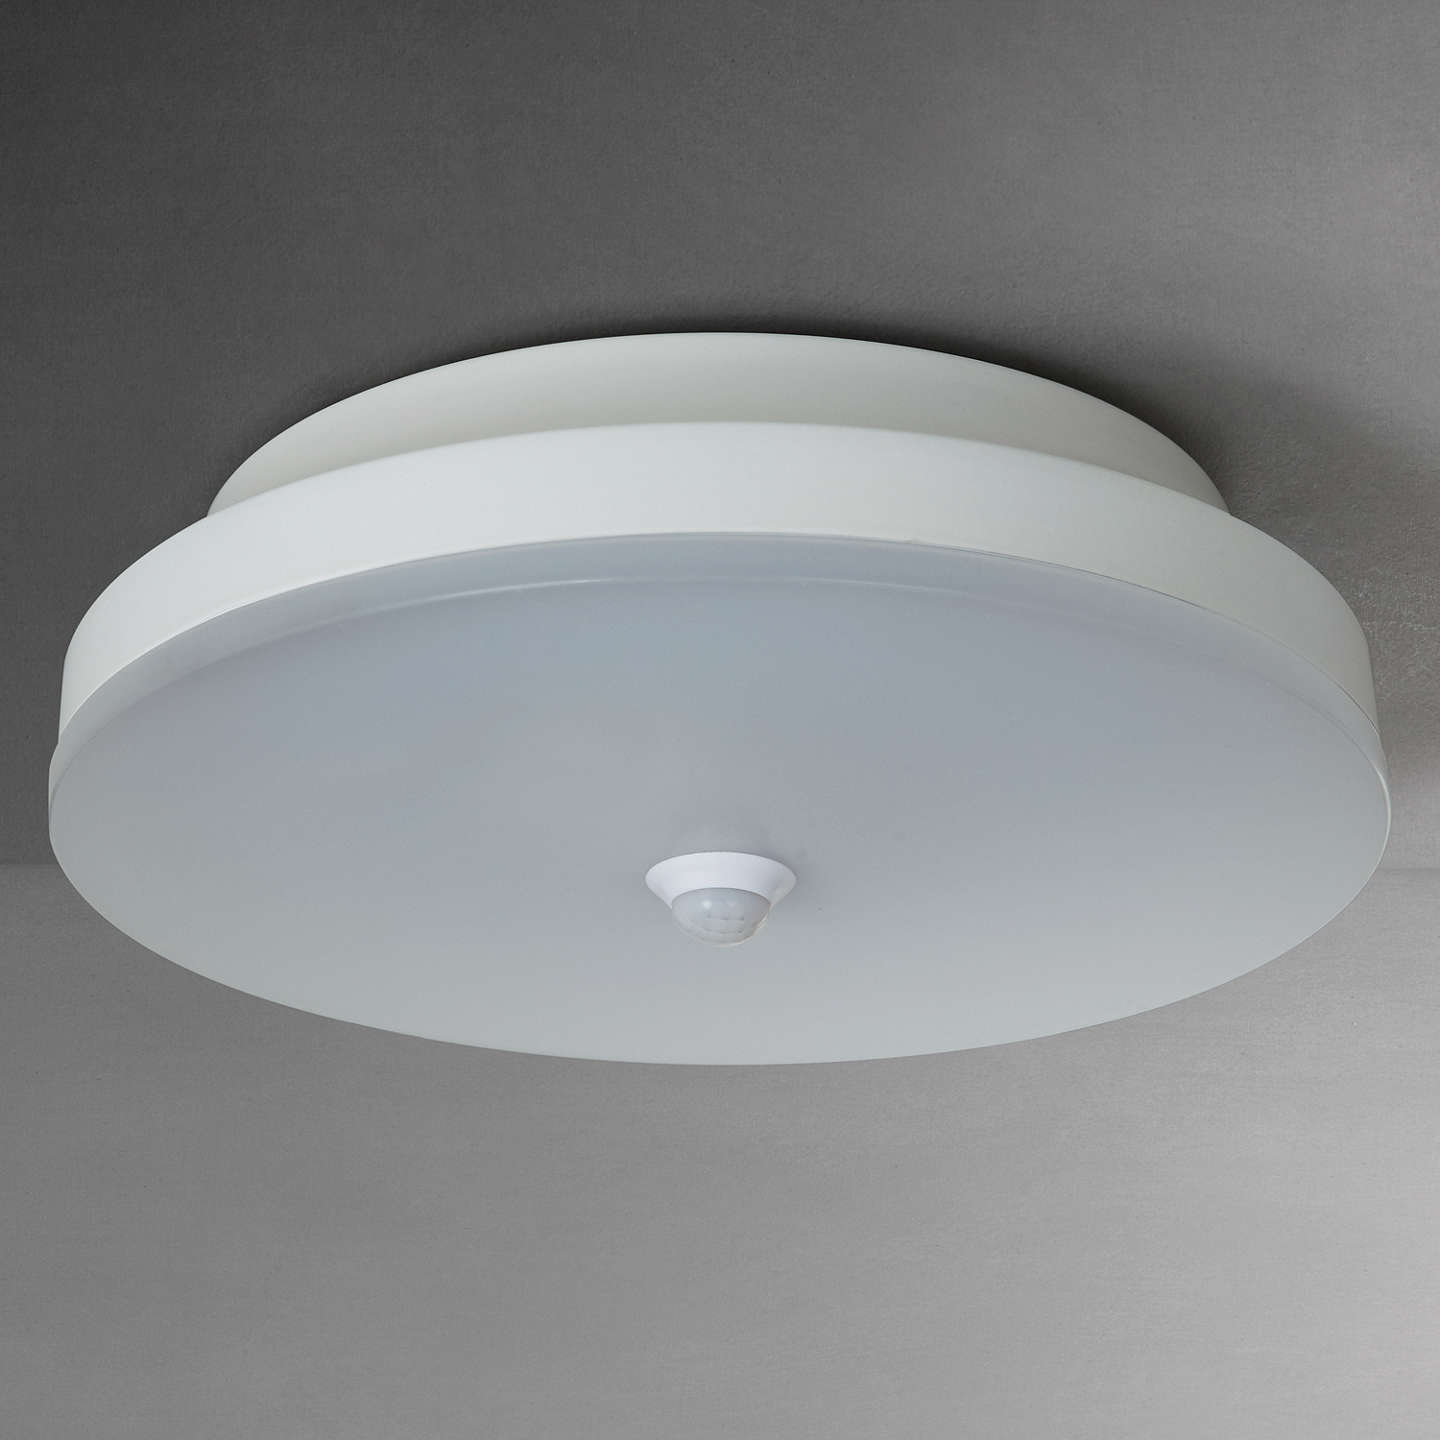 Nordlux scala led sensor bathroom light at john lewis buynordlux scala led sensor bathroom light online at johnlewis aloadofball Choice Image